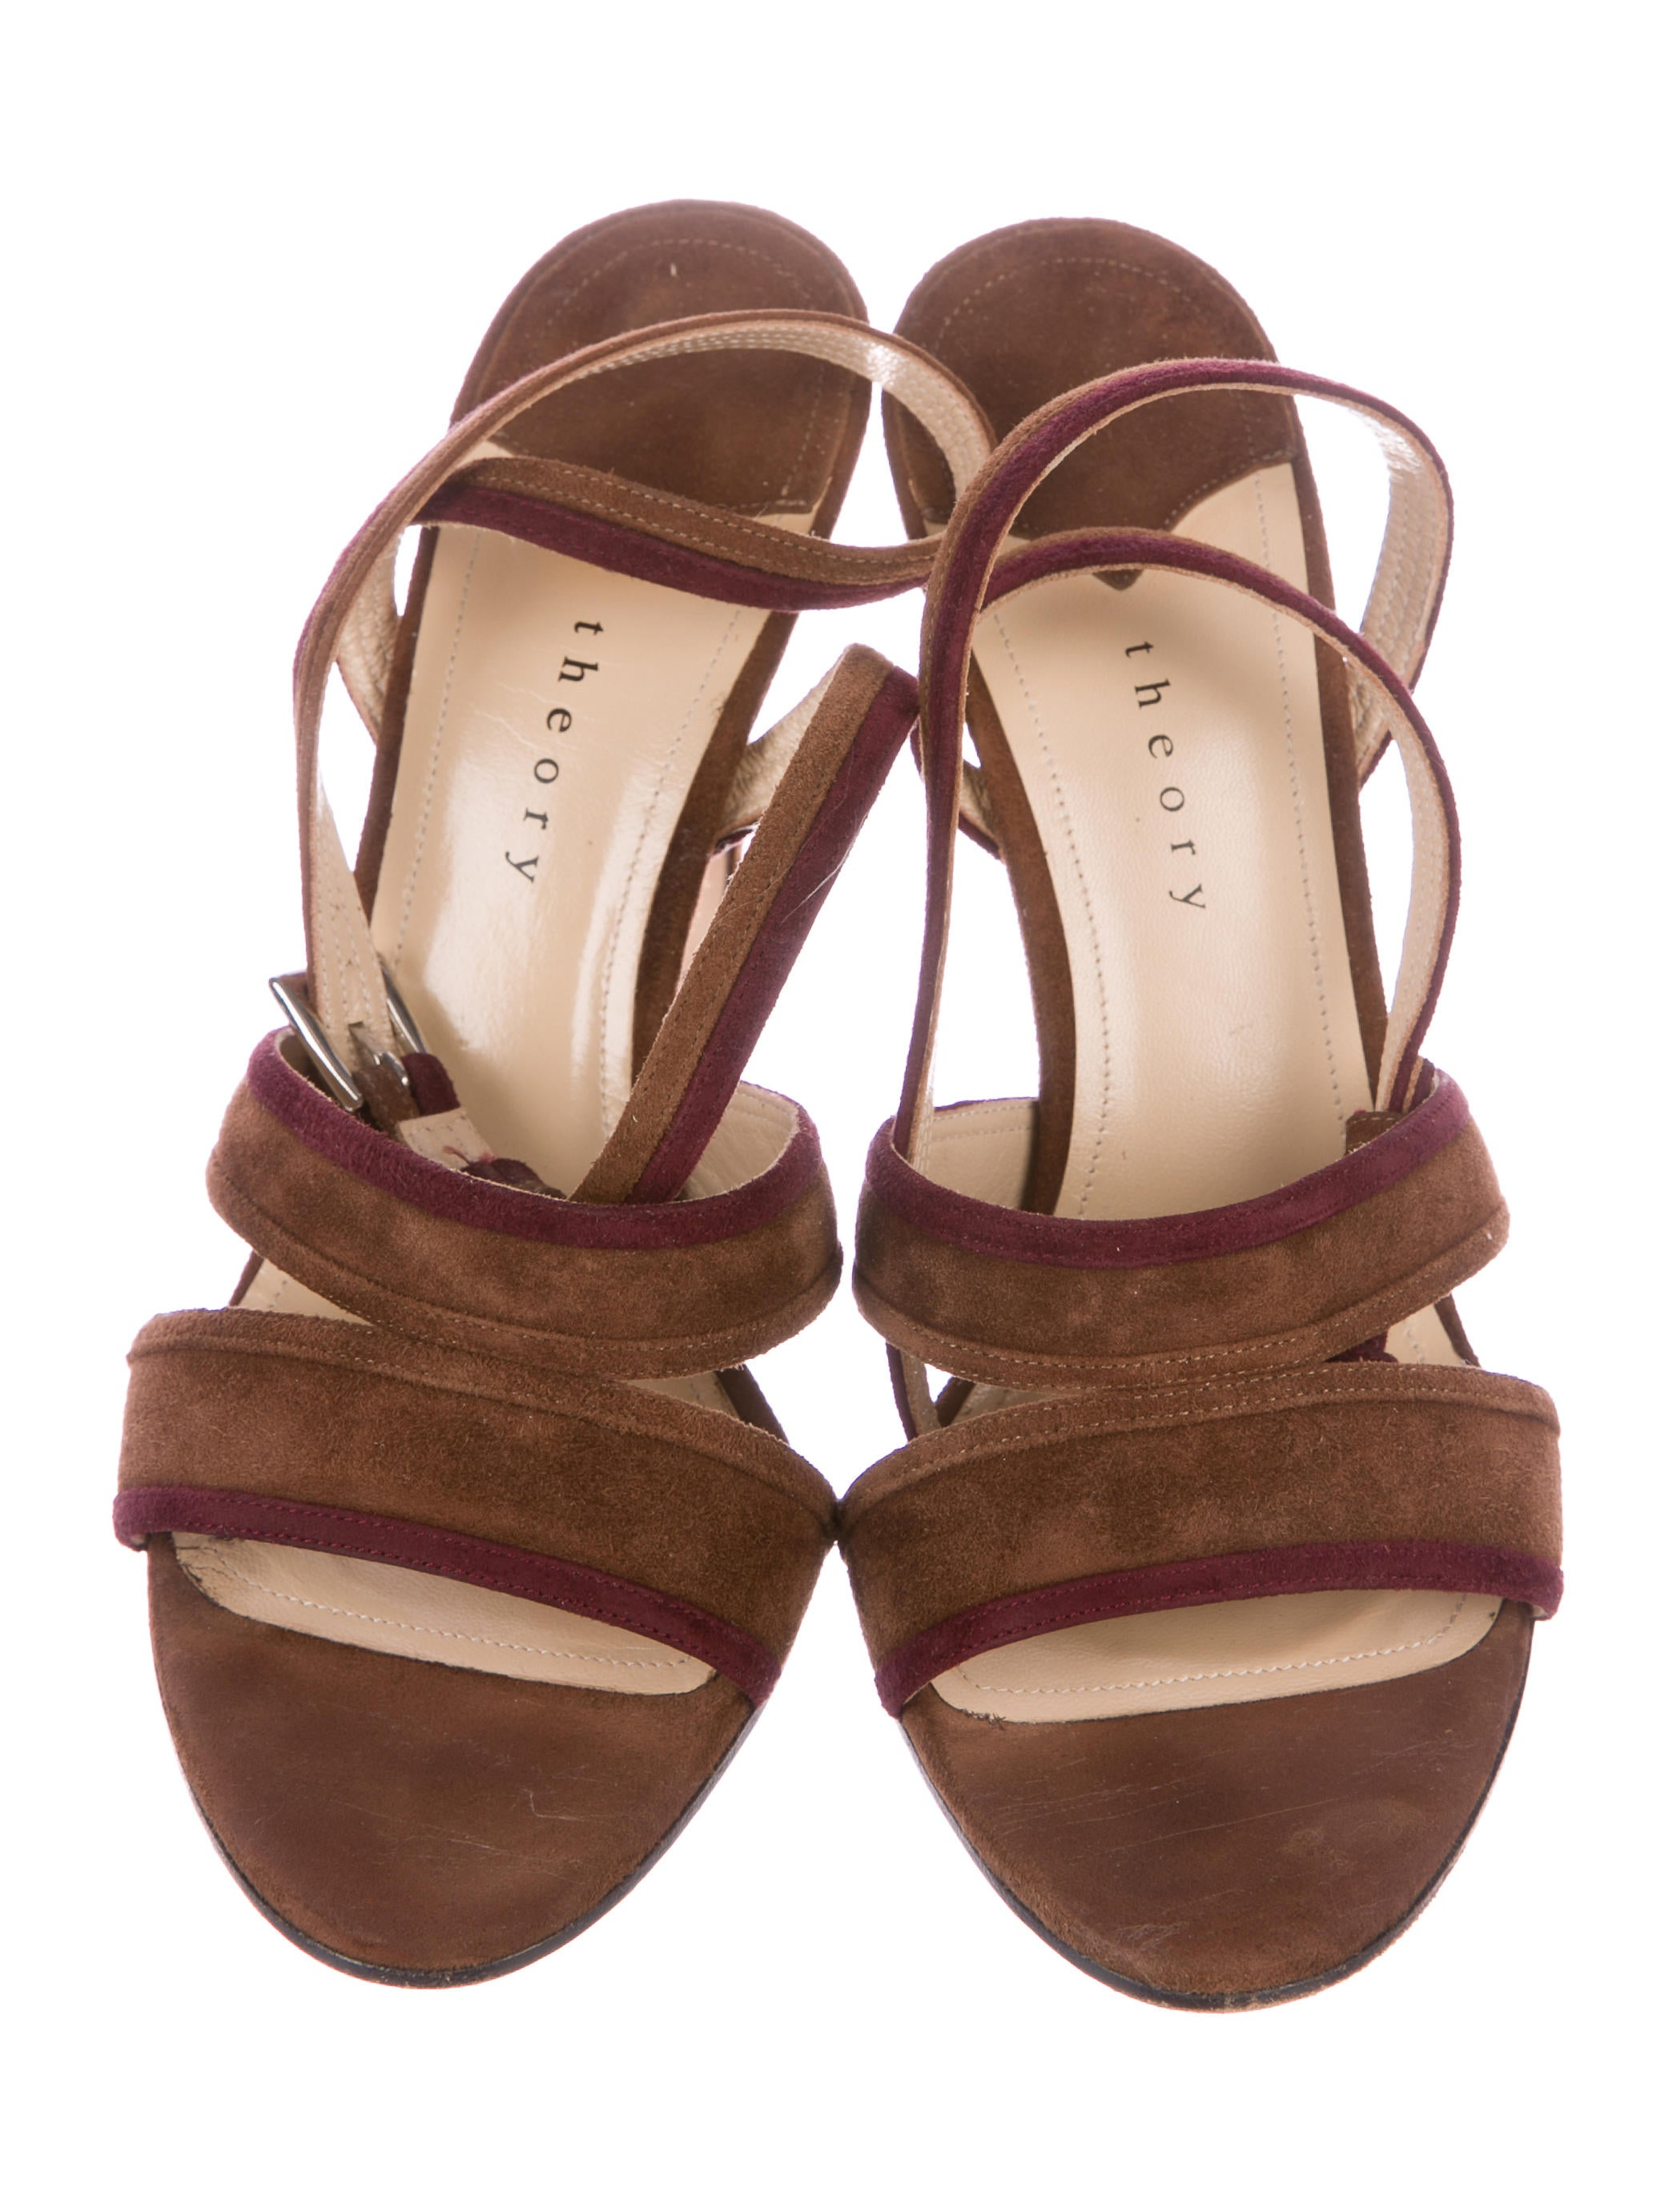 buy cheap amazing price low shipping fee for sale Theory Suede Multistrap Sandals sN7s03ilmR